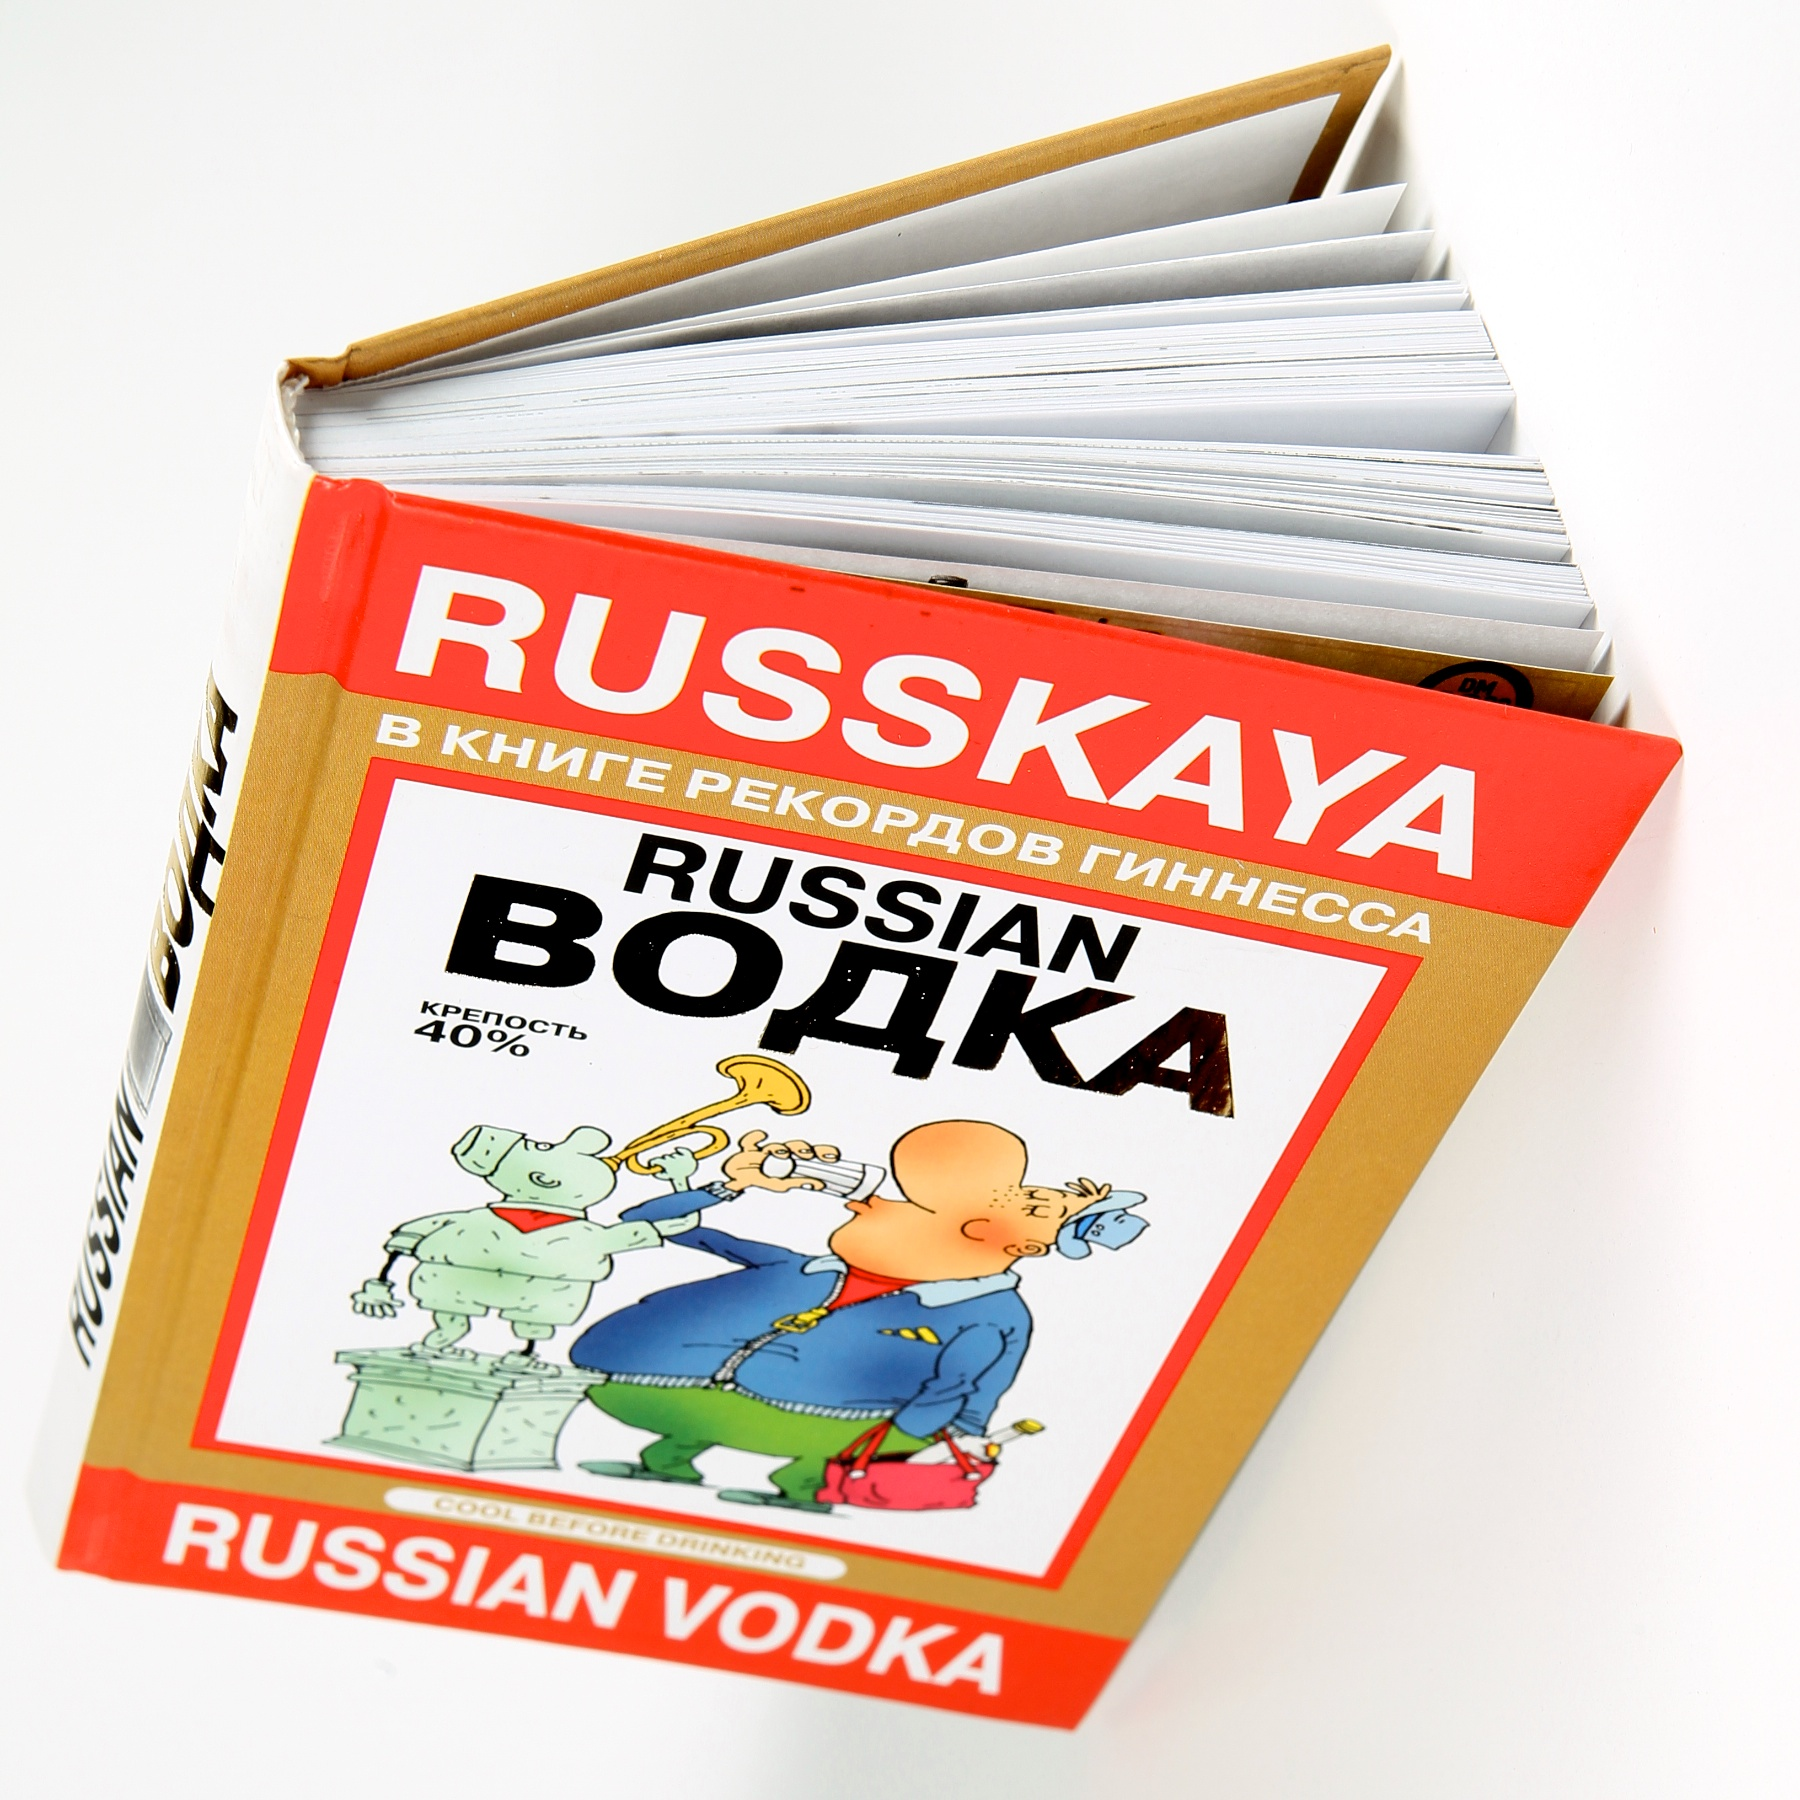 Vodkatrain Book_009